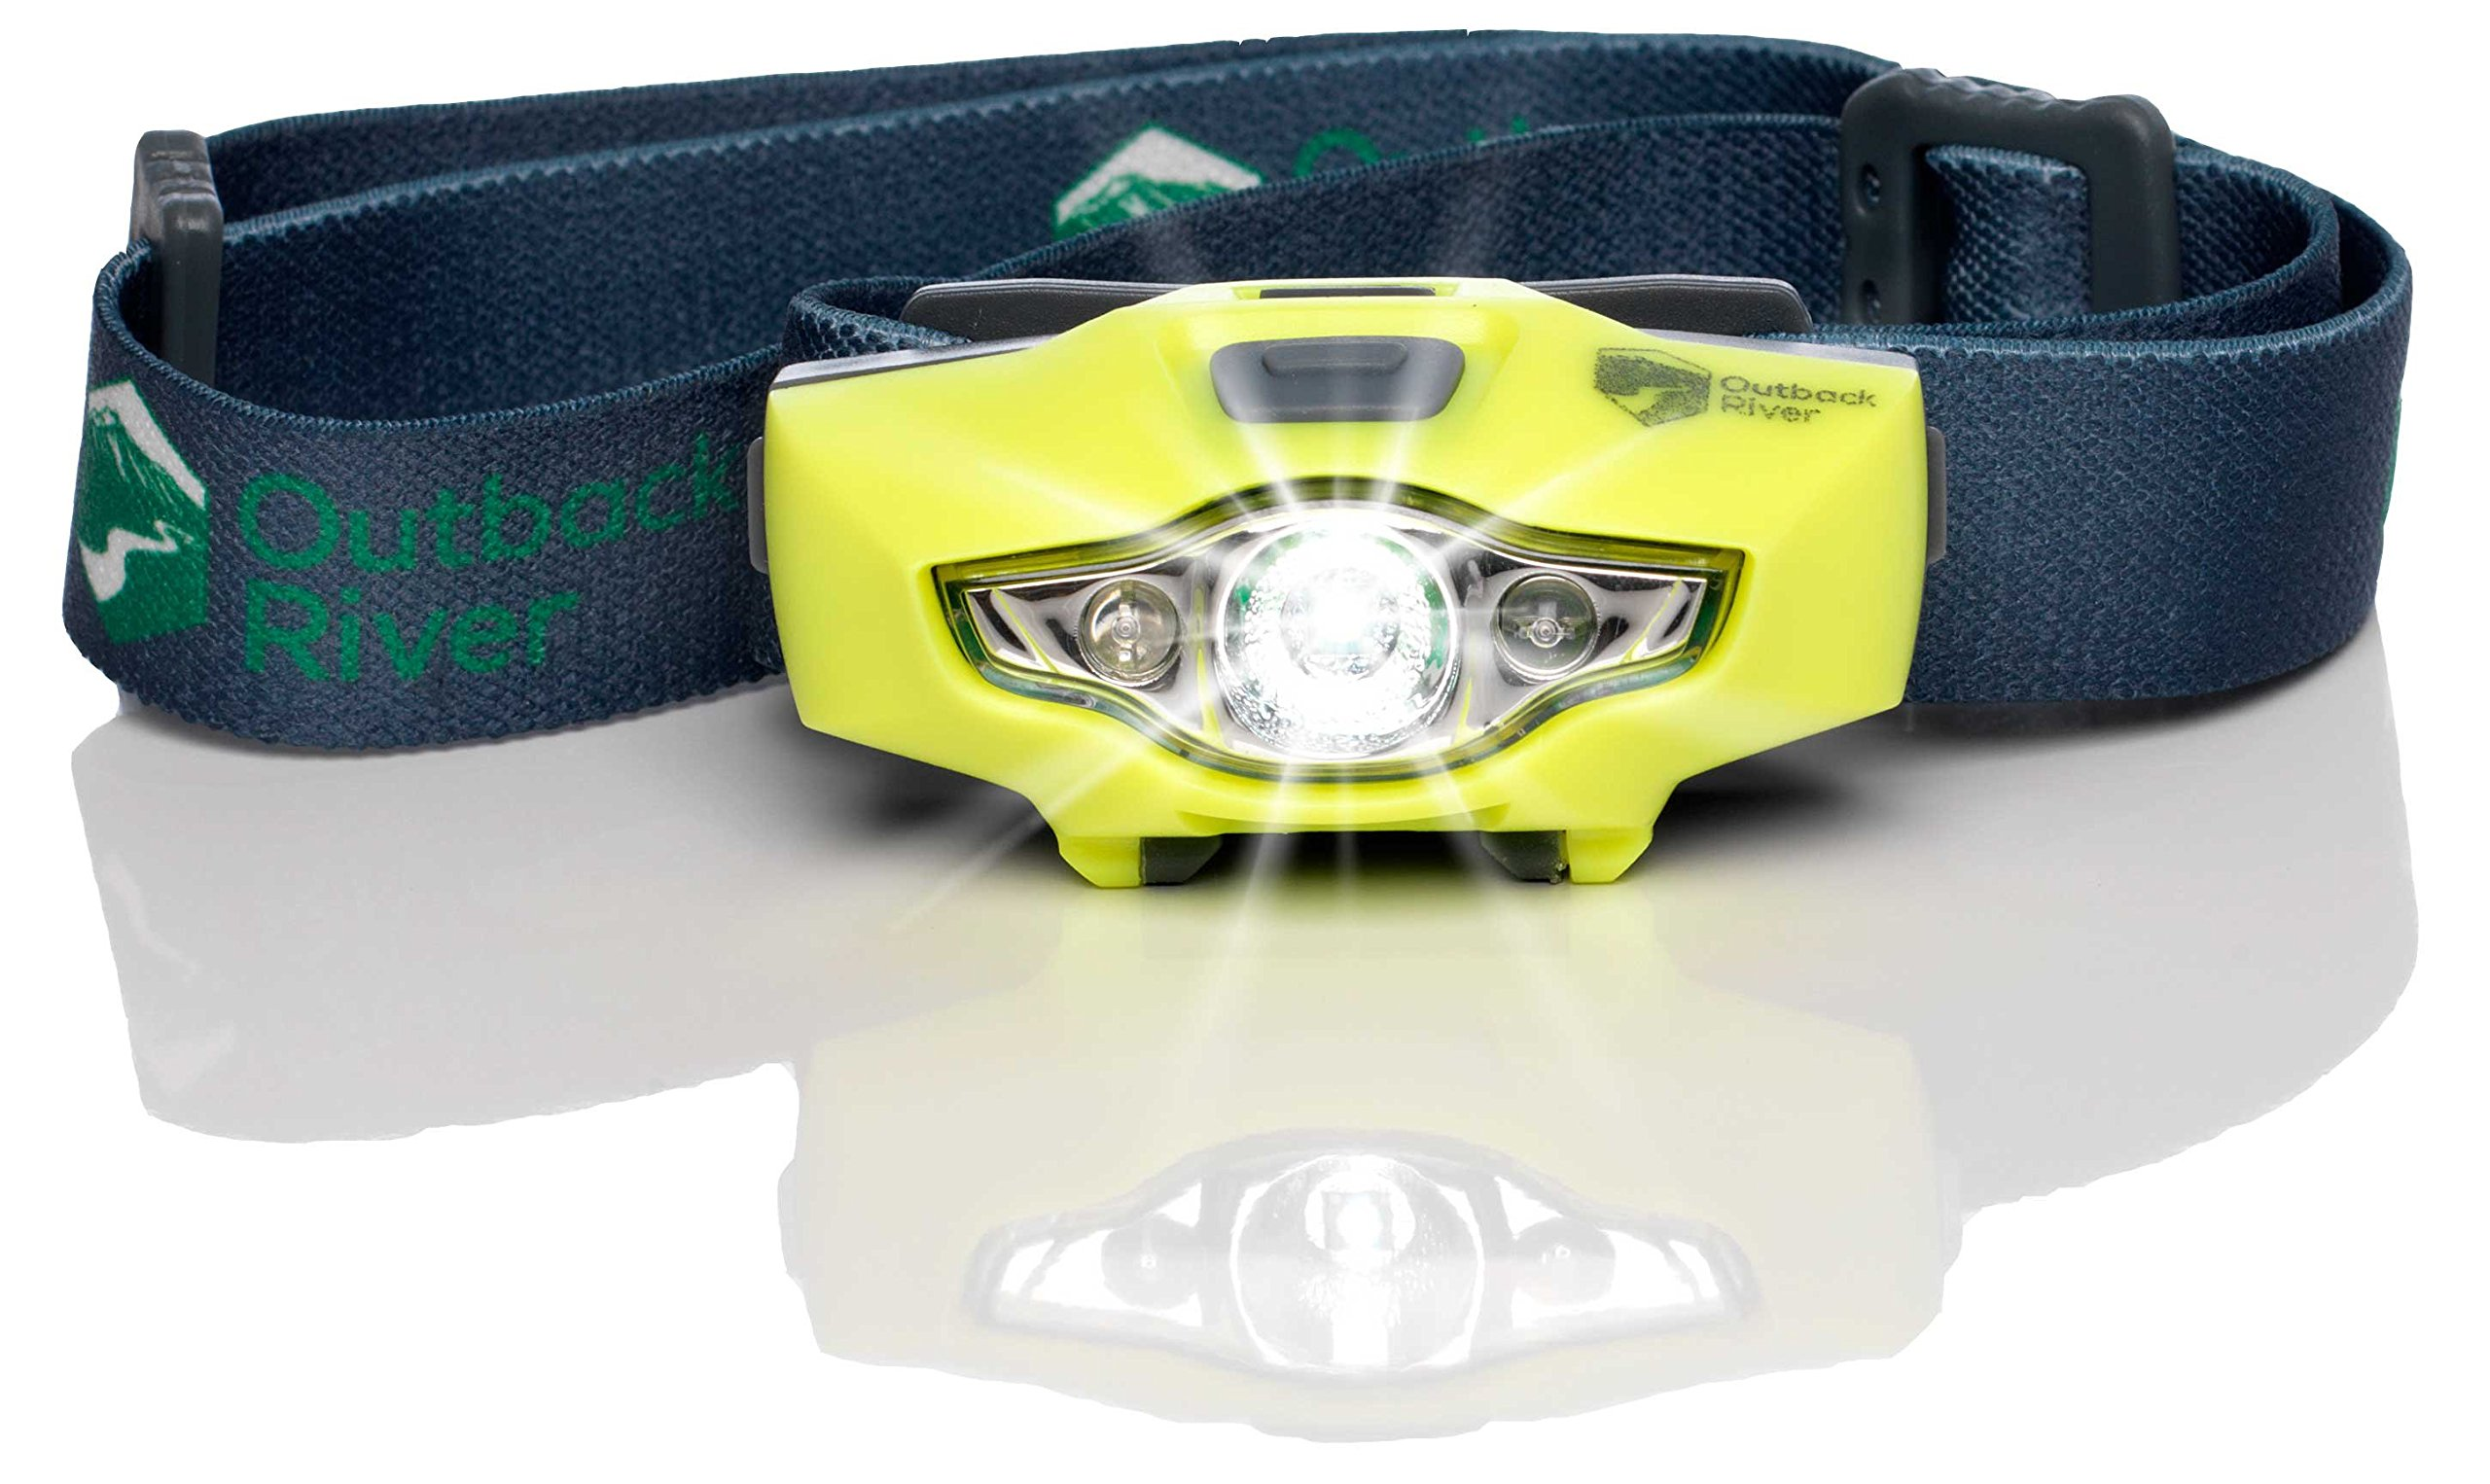 Outback River BrightSpark Compact LED Headlamp, Water Resistant, Powerful for its Size, Single AA, Slips Easily Into Your Pocket. Best for Hiking, Running, Camping, Fishing, Hunting, Kids, Reading.